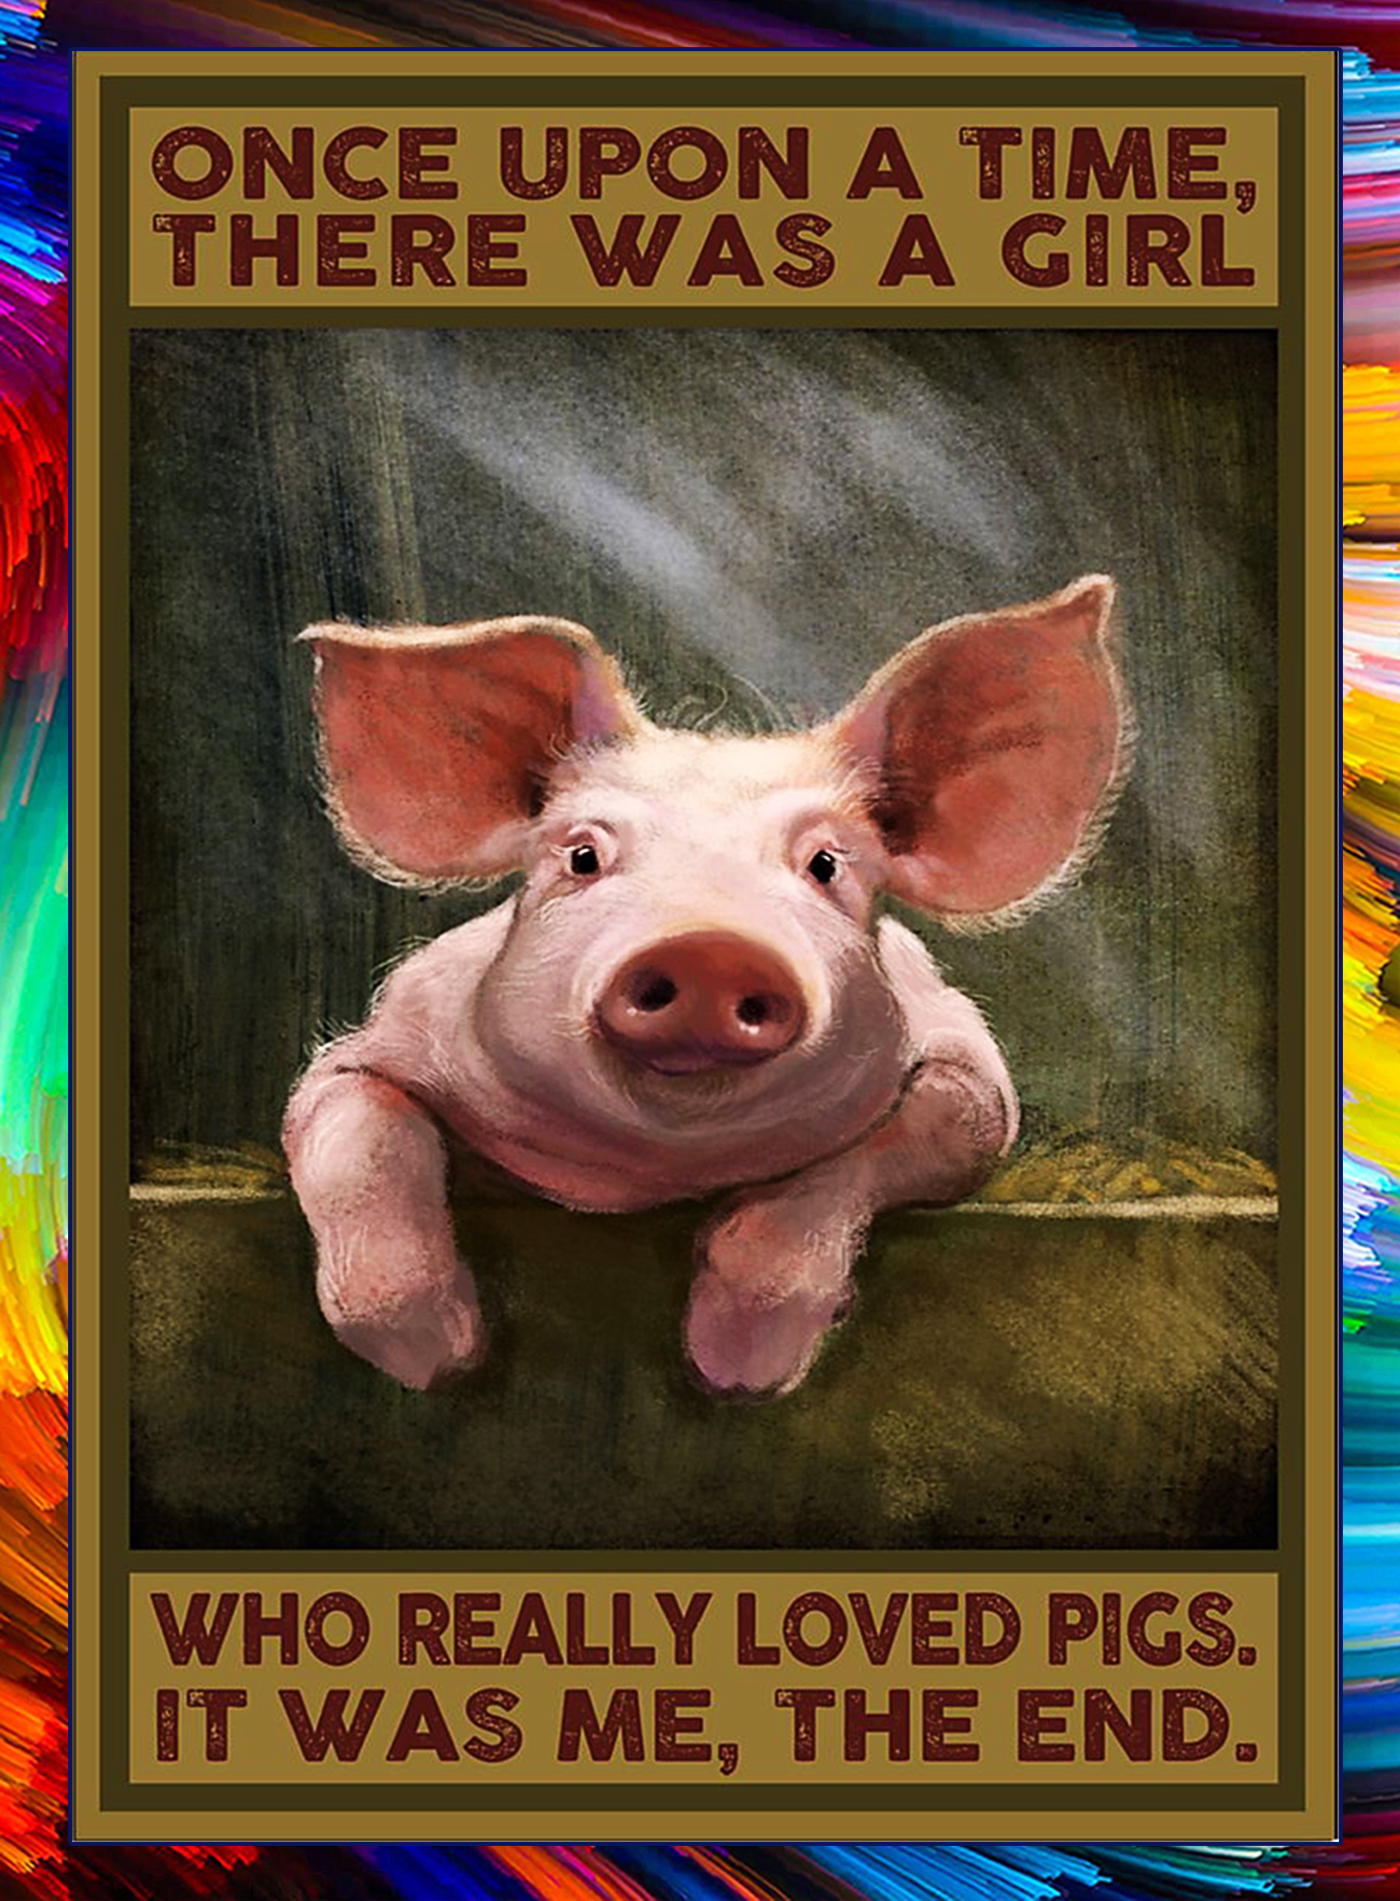 Once upon a time there was a girl who really loved pigs poster - A1